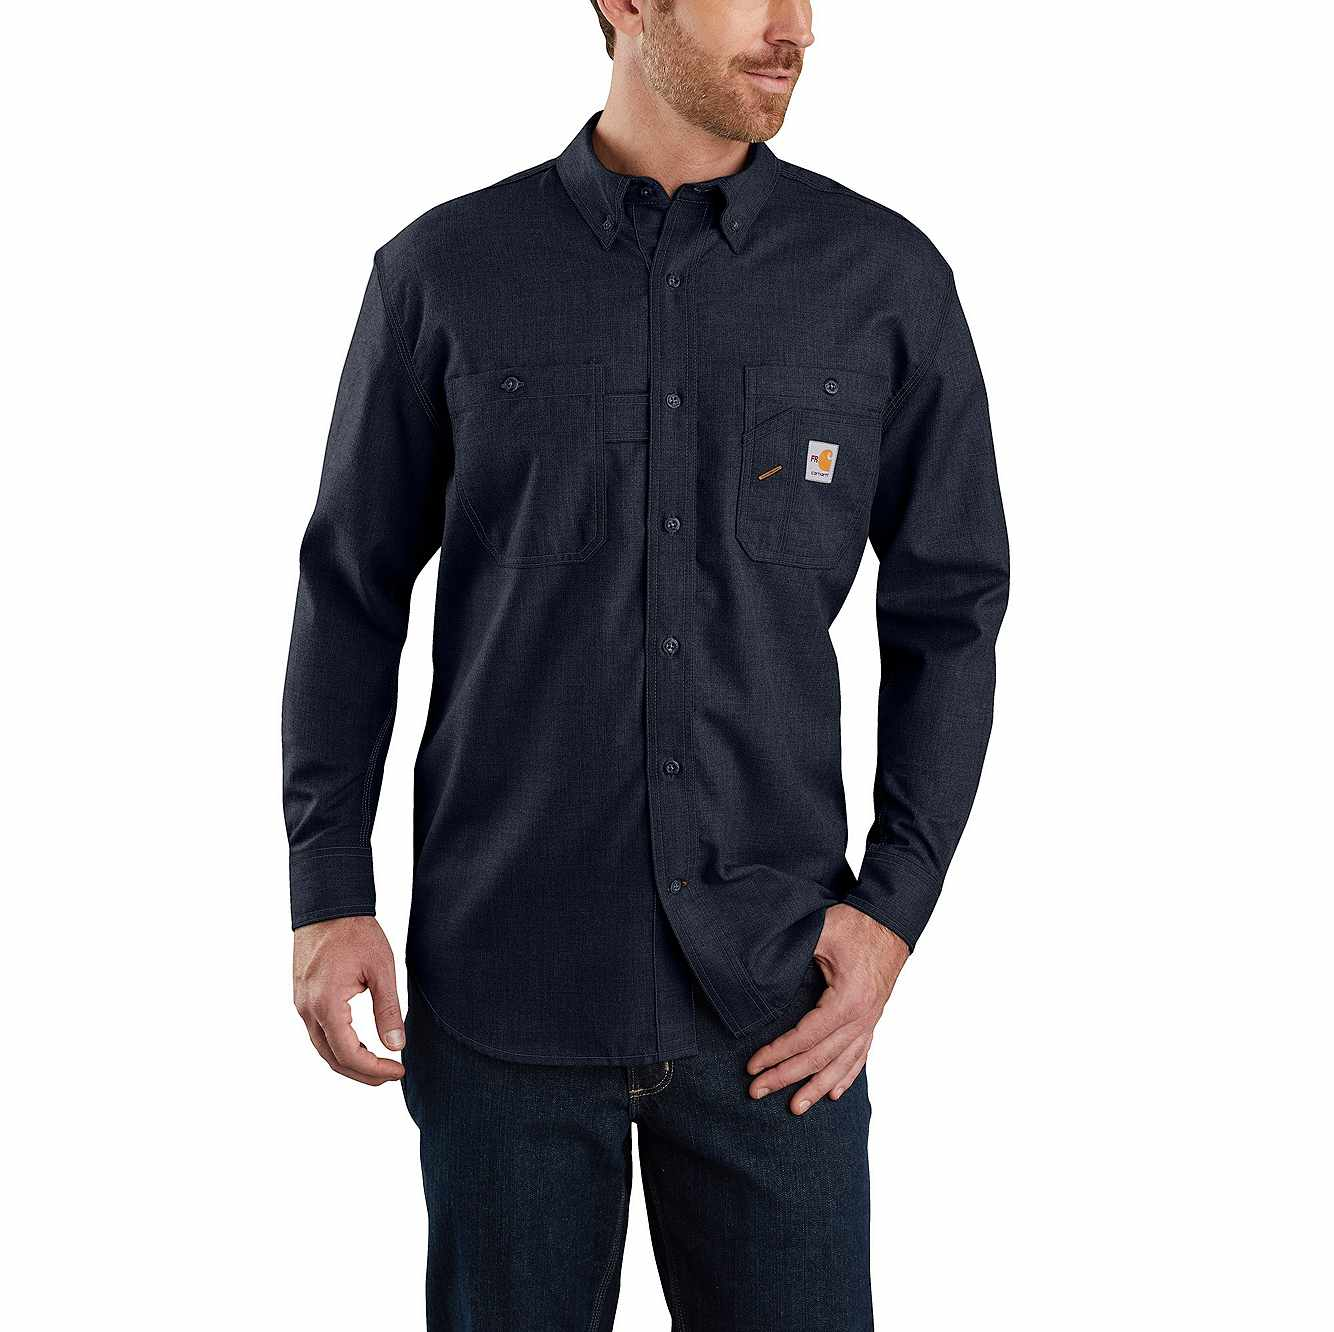 Picture of Flame-Resistant Carhartt Force® Original Fit Lightweight Long-Sleeve Button Front Shirt in Navy